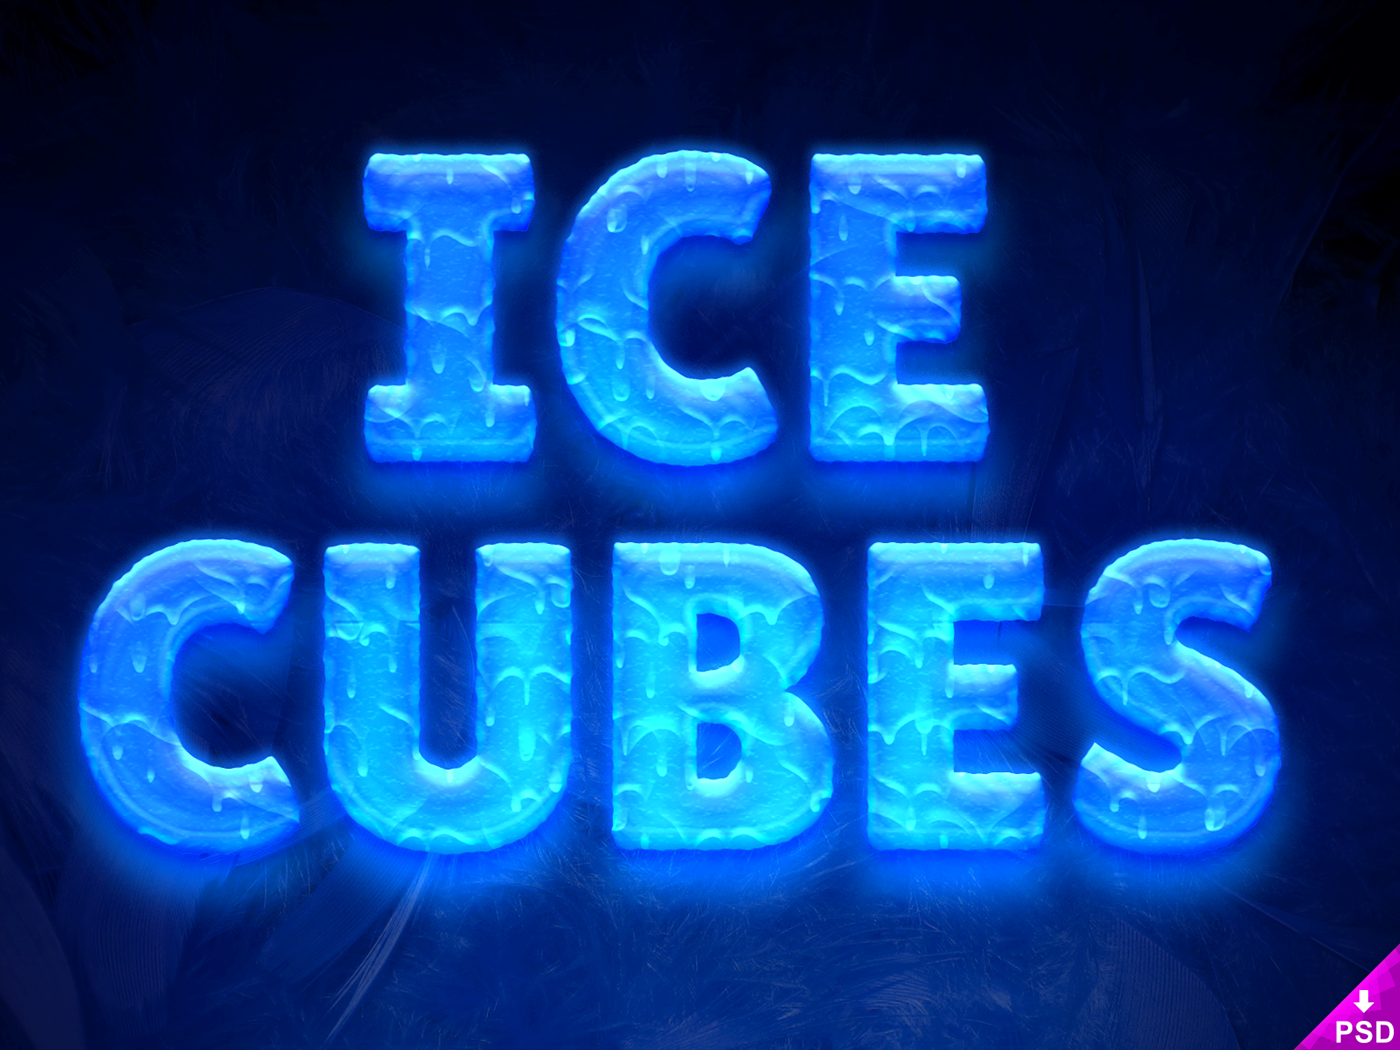 ice,cube,freebie,free,text,Style,blue,cold,winter